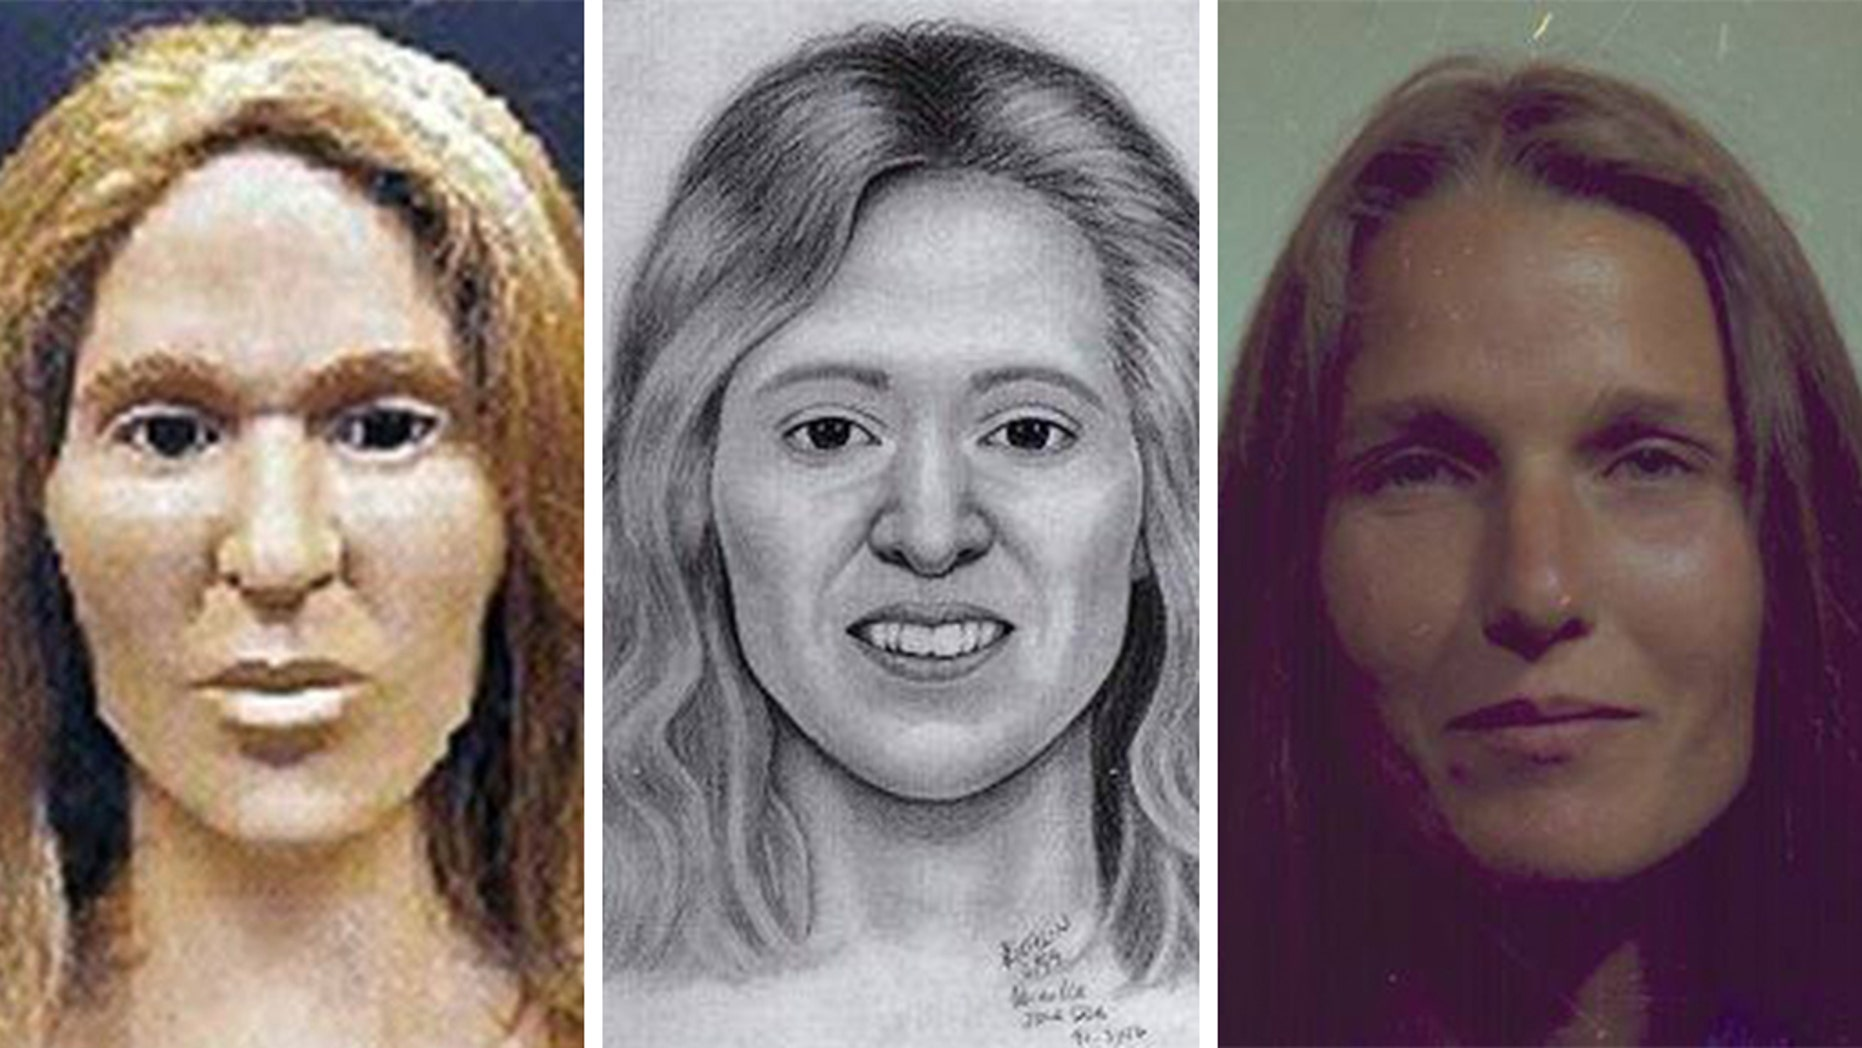 """After 28 years, detectives never gave up hope that a """"Jane Doe"""" case would one day be solved. From the clay reconstruction model (left) to the artist's sketch done after the model was completed, the woman was identified as Cynthia Merkley, """"AKA"""" Cynthia Bilardi who was 38 years old at the time of her death. (Vacaville Police Department)"""